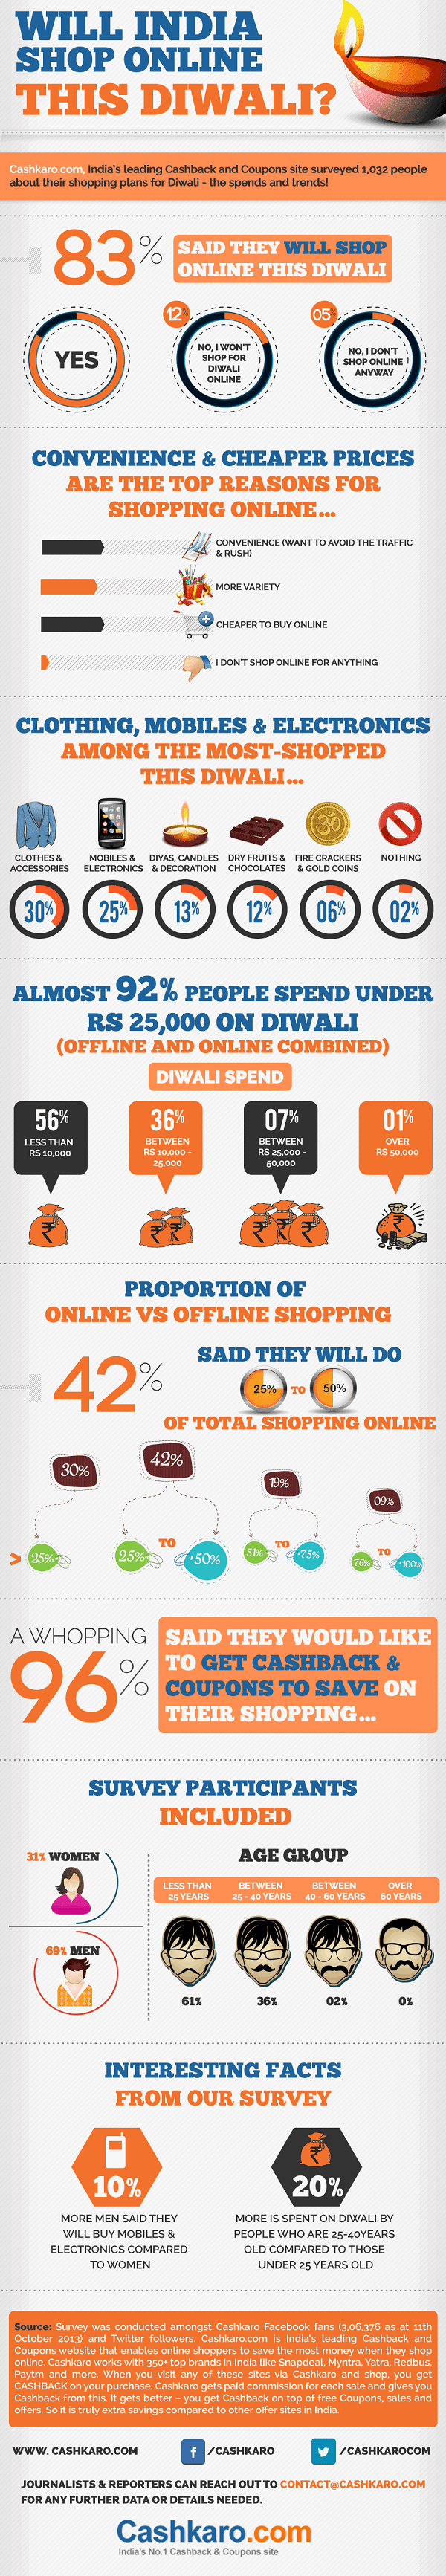 online-shopping-trends-in-india-during-festivals-infographic_525d2eab6586b